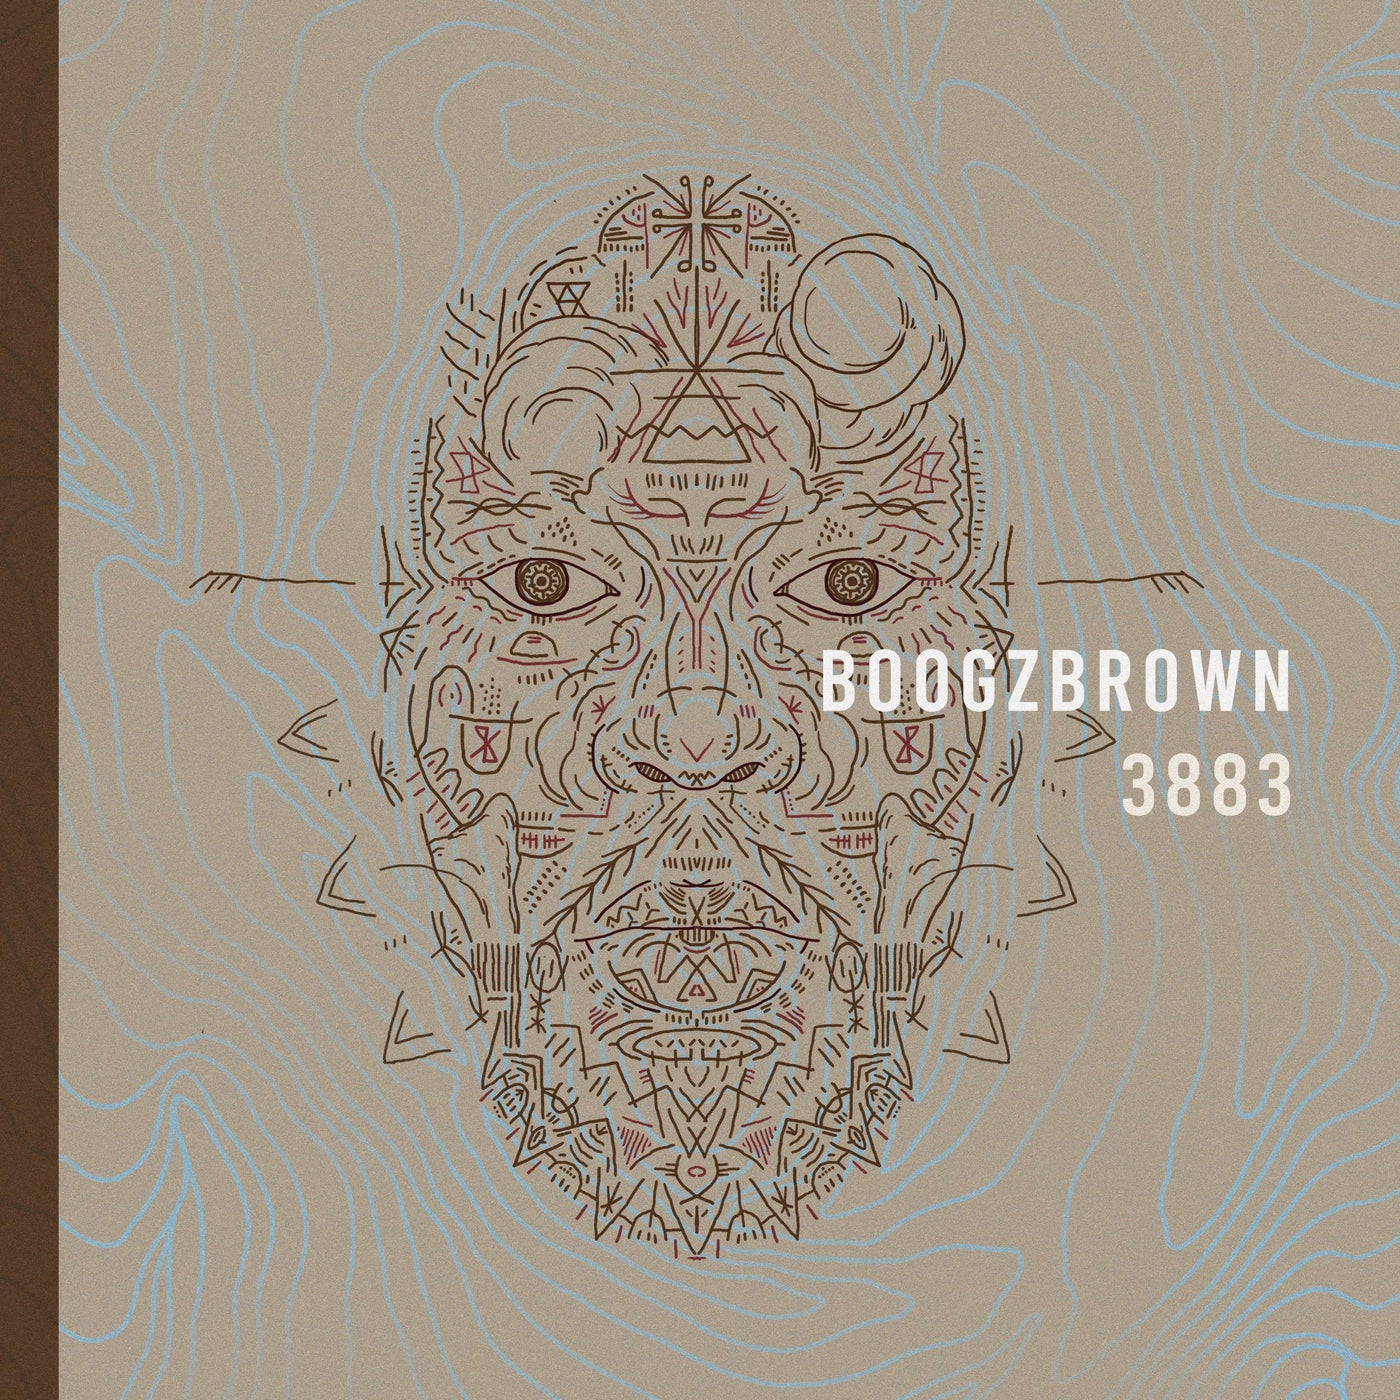 Boogzbrown - 3883 (2021)